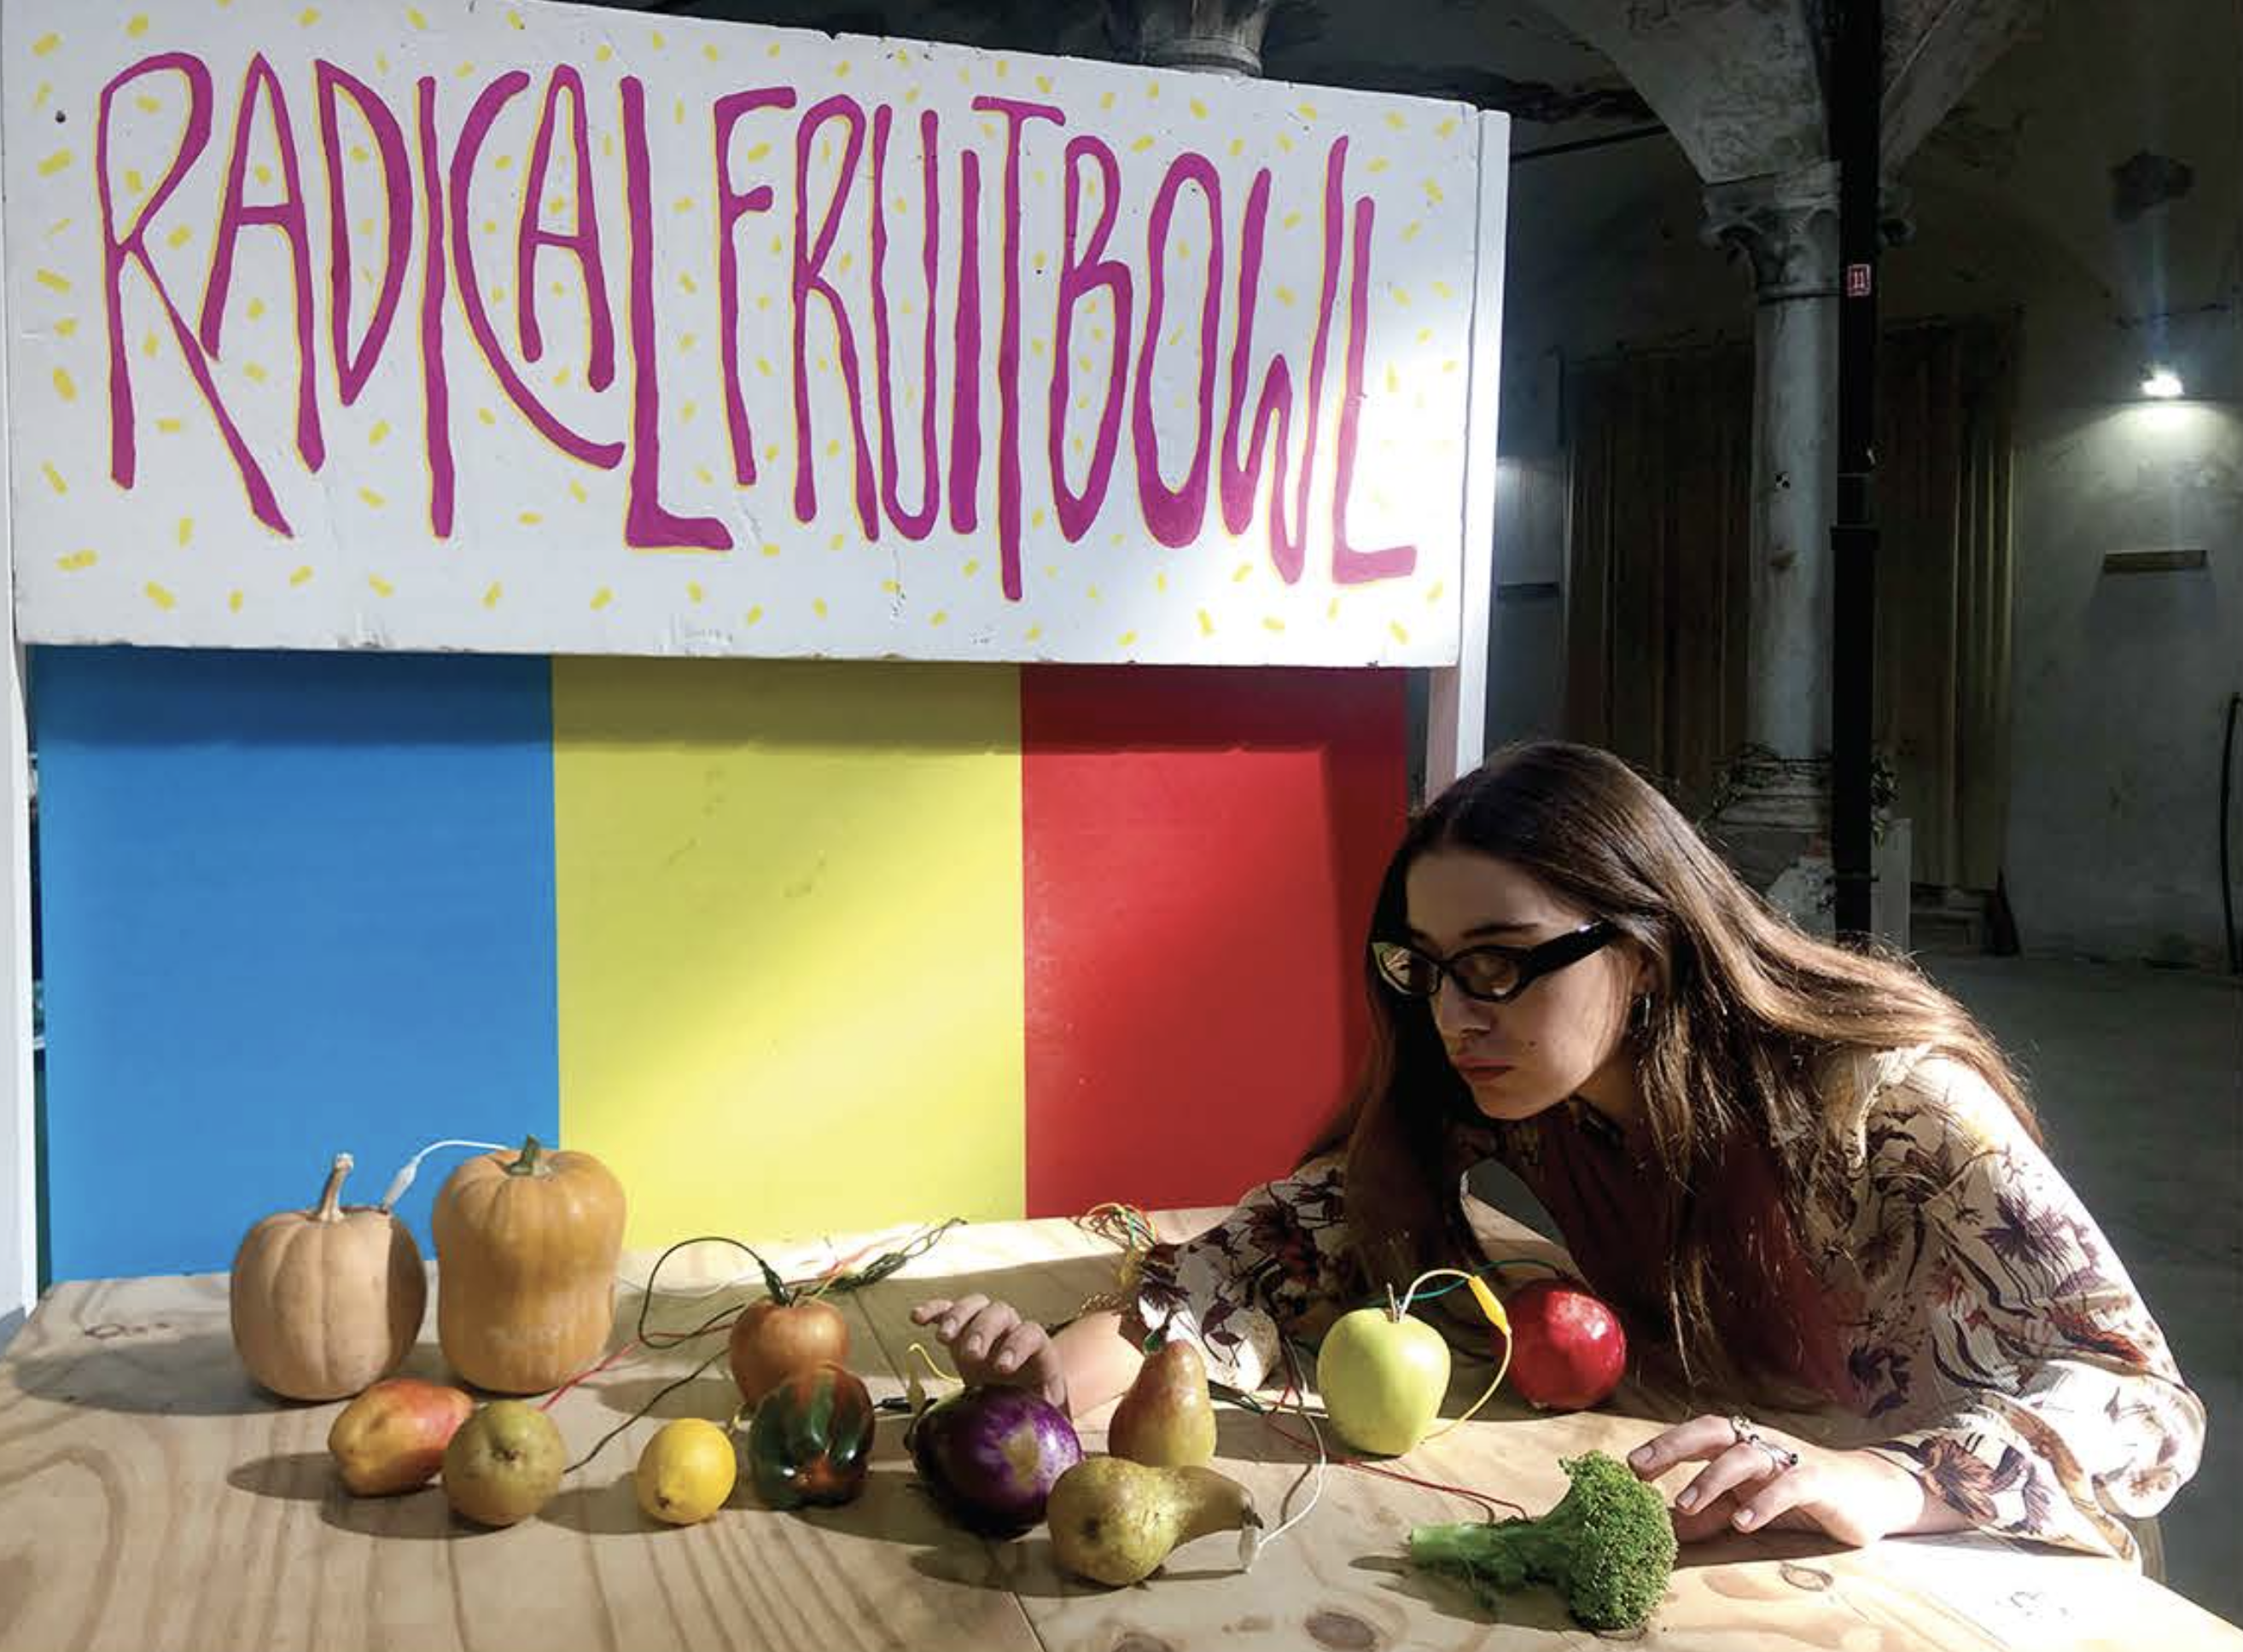 Radical Fruit Bowl